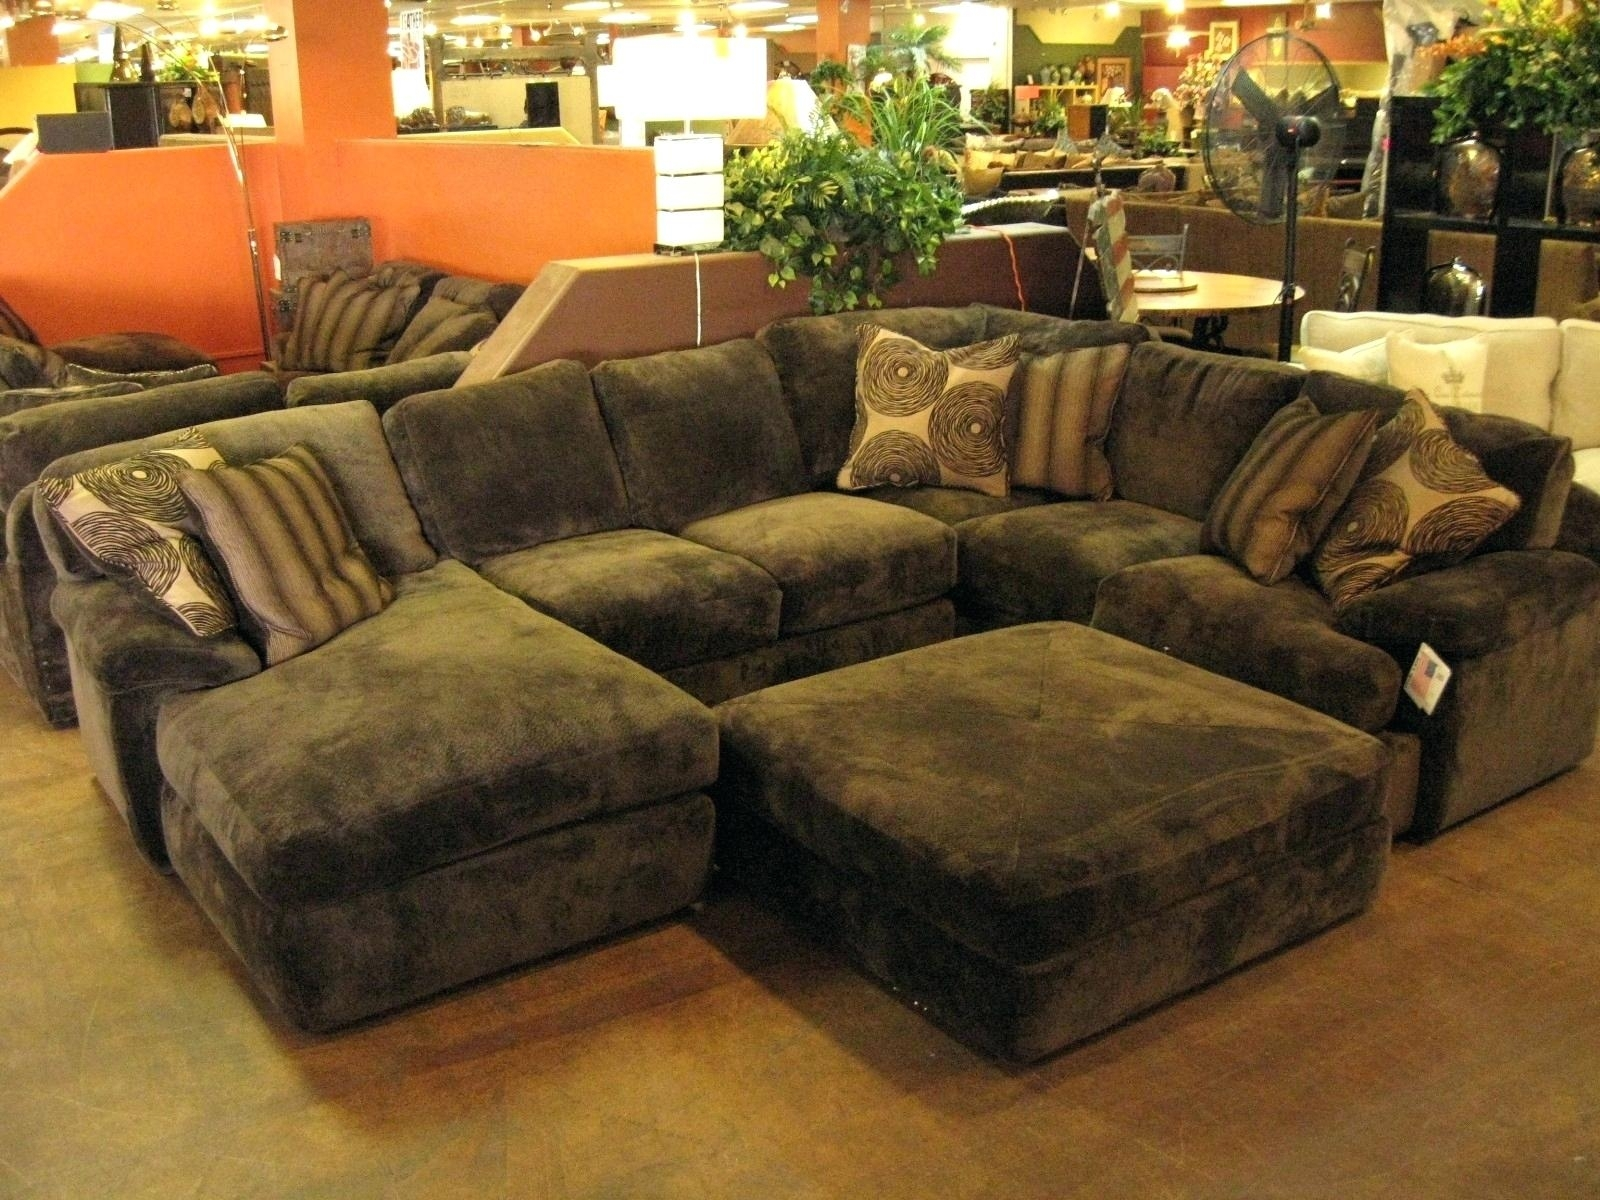 Sectional Sofas Okc Or T Cheap For Sale Ok – Koupelnynaklic In Okc Sectional Sofas (View 3 of 10)